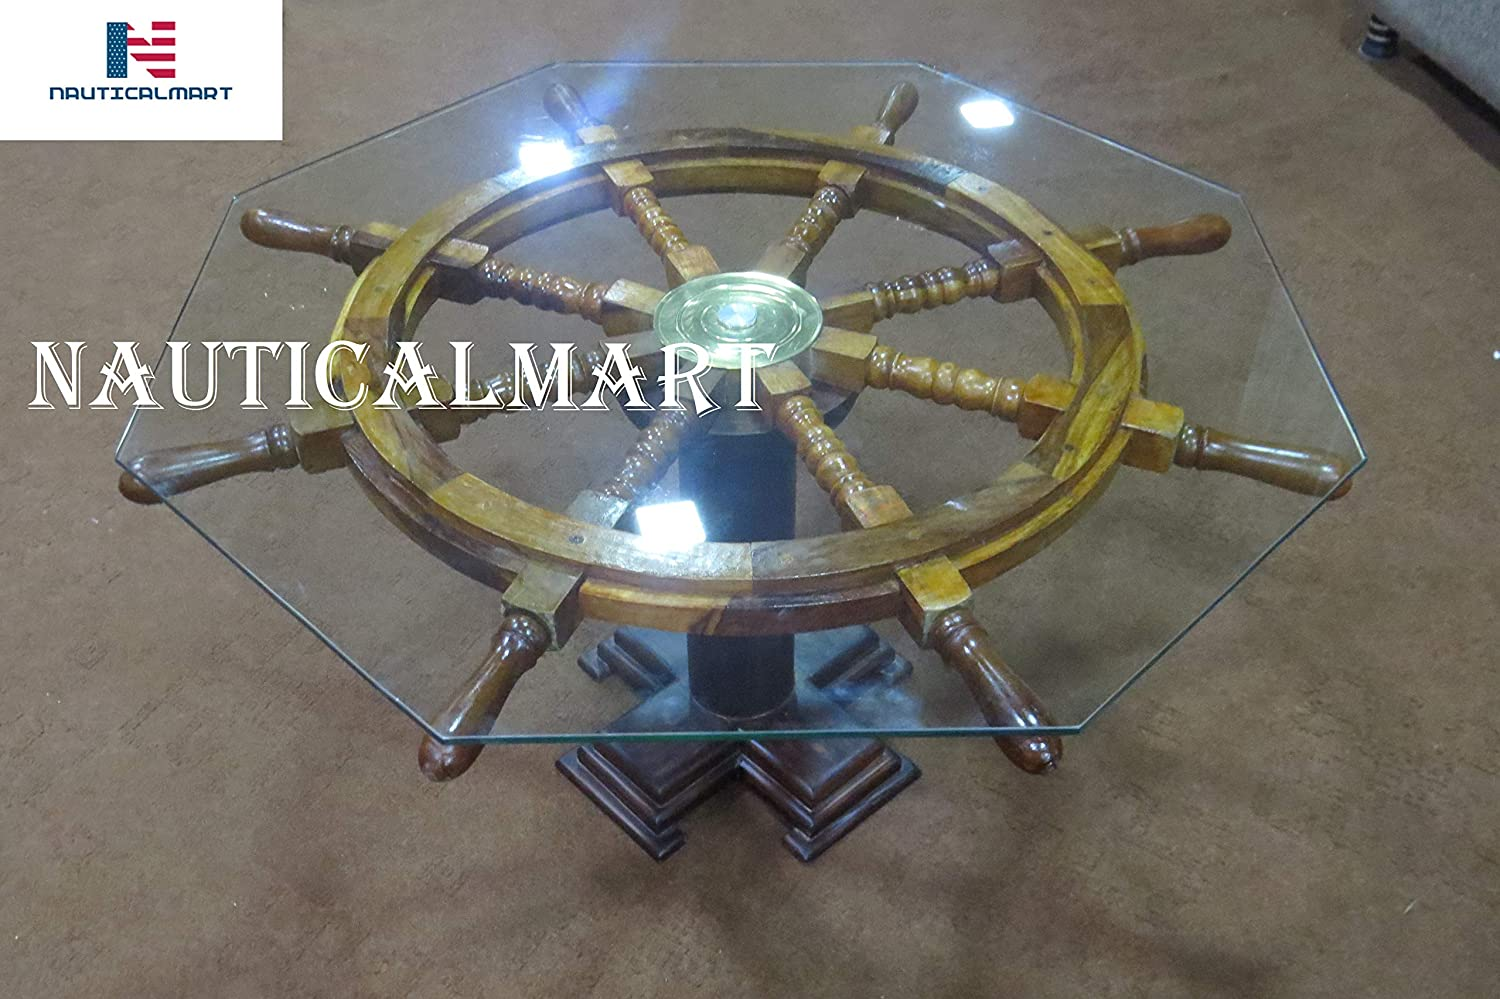 Vintage Ship's Wheel Coffee Table with Glass by NaticalMart